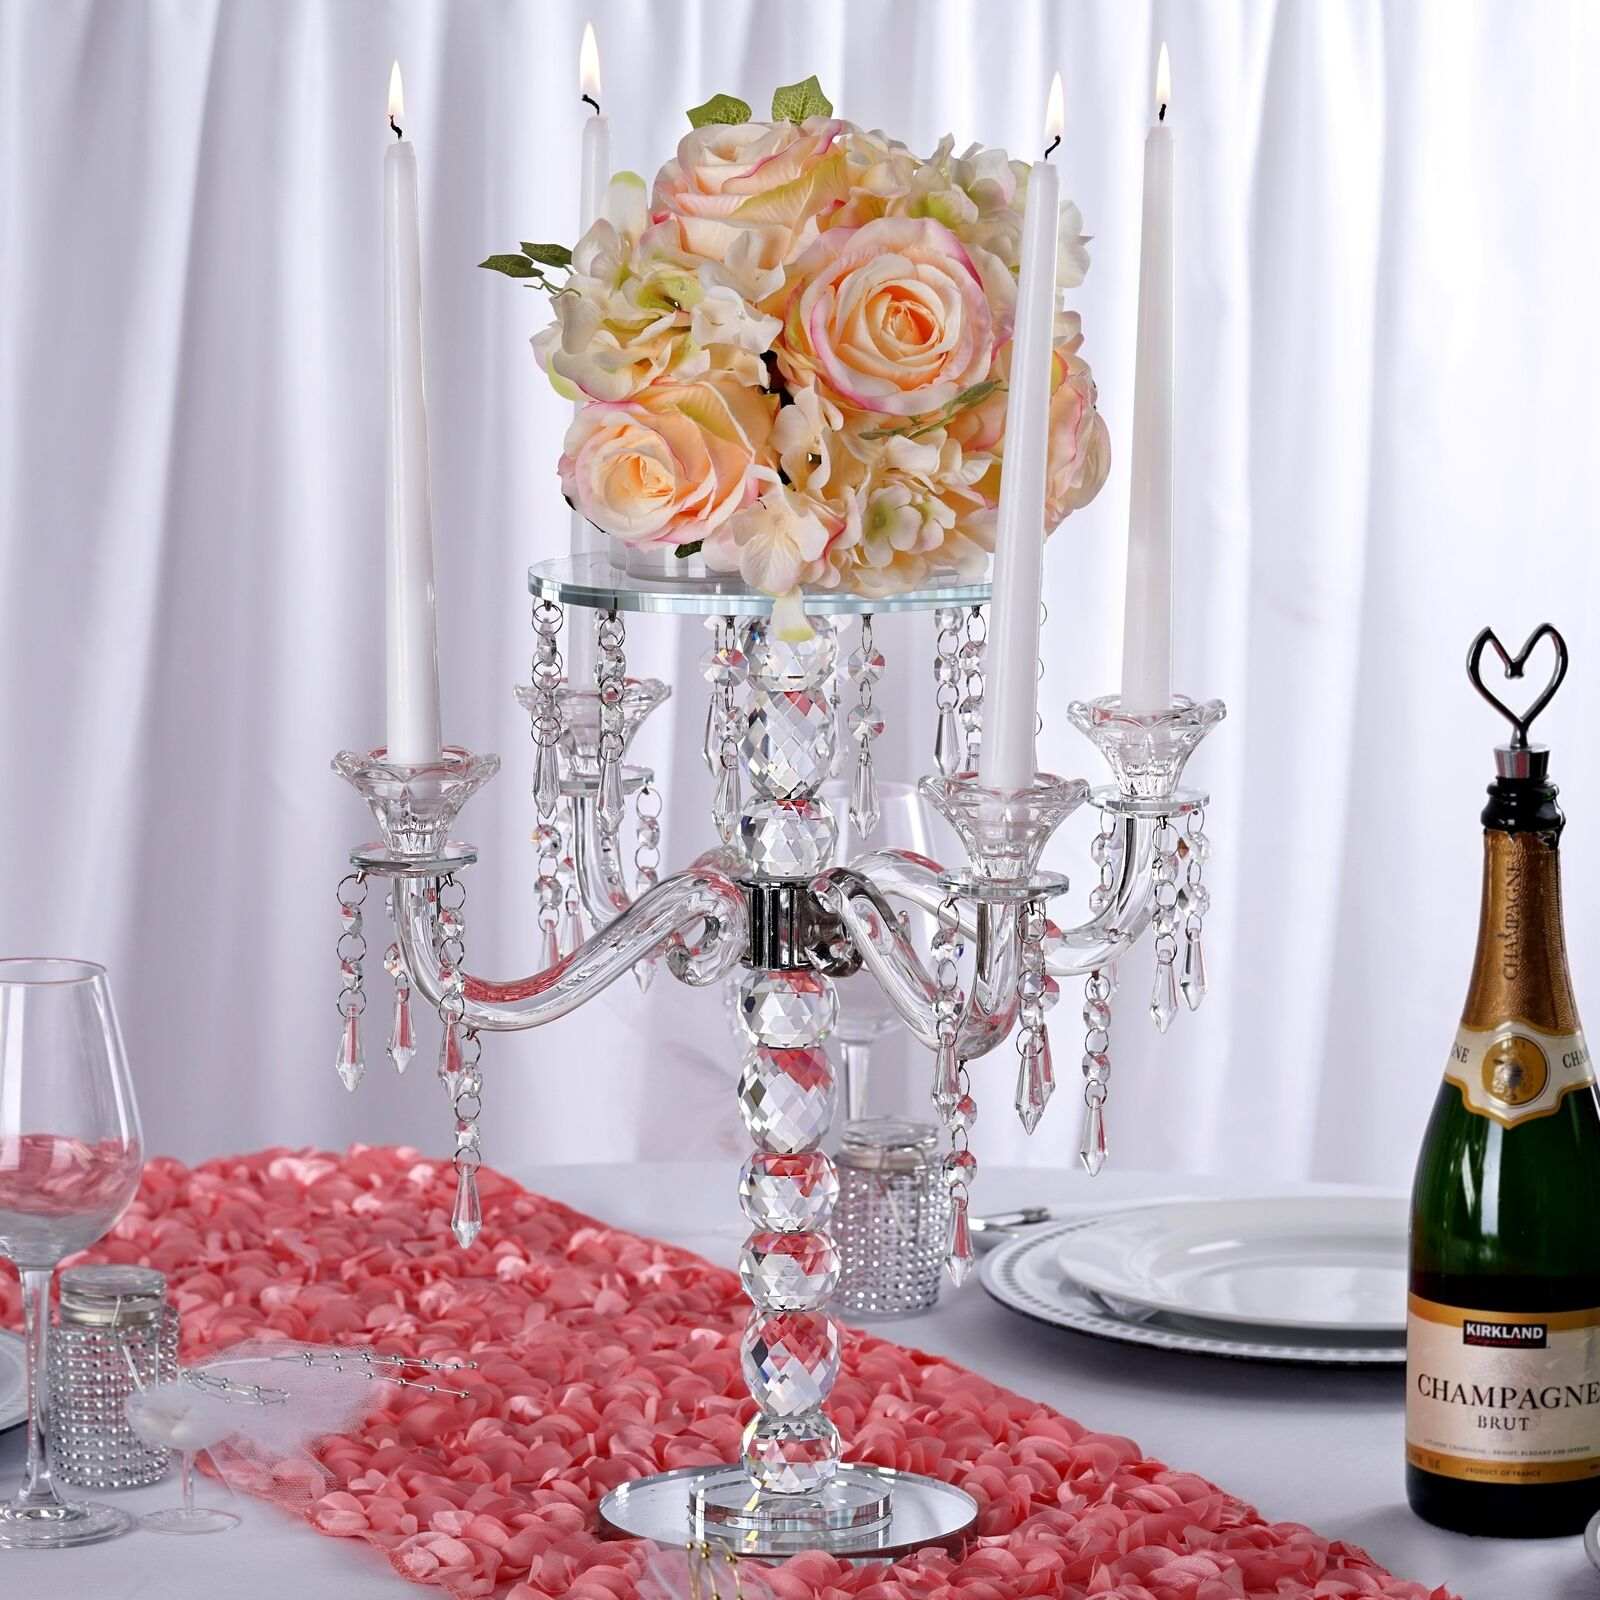 15  Gemcut Glass Candelabra Votive Candle Holder With Crystal Chains - 1 PCS